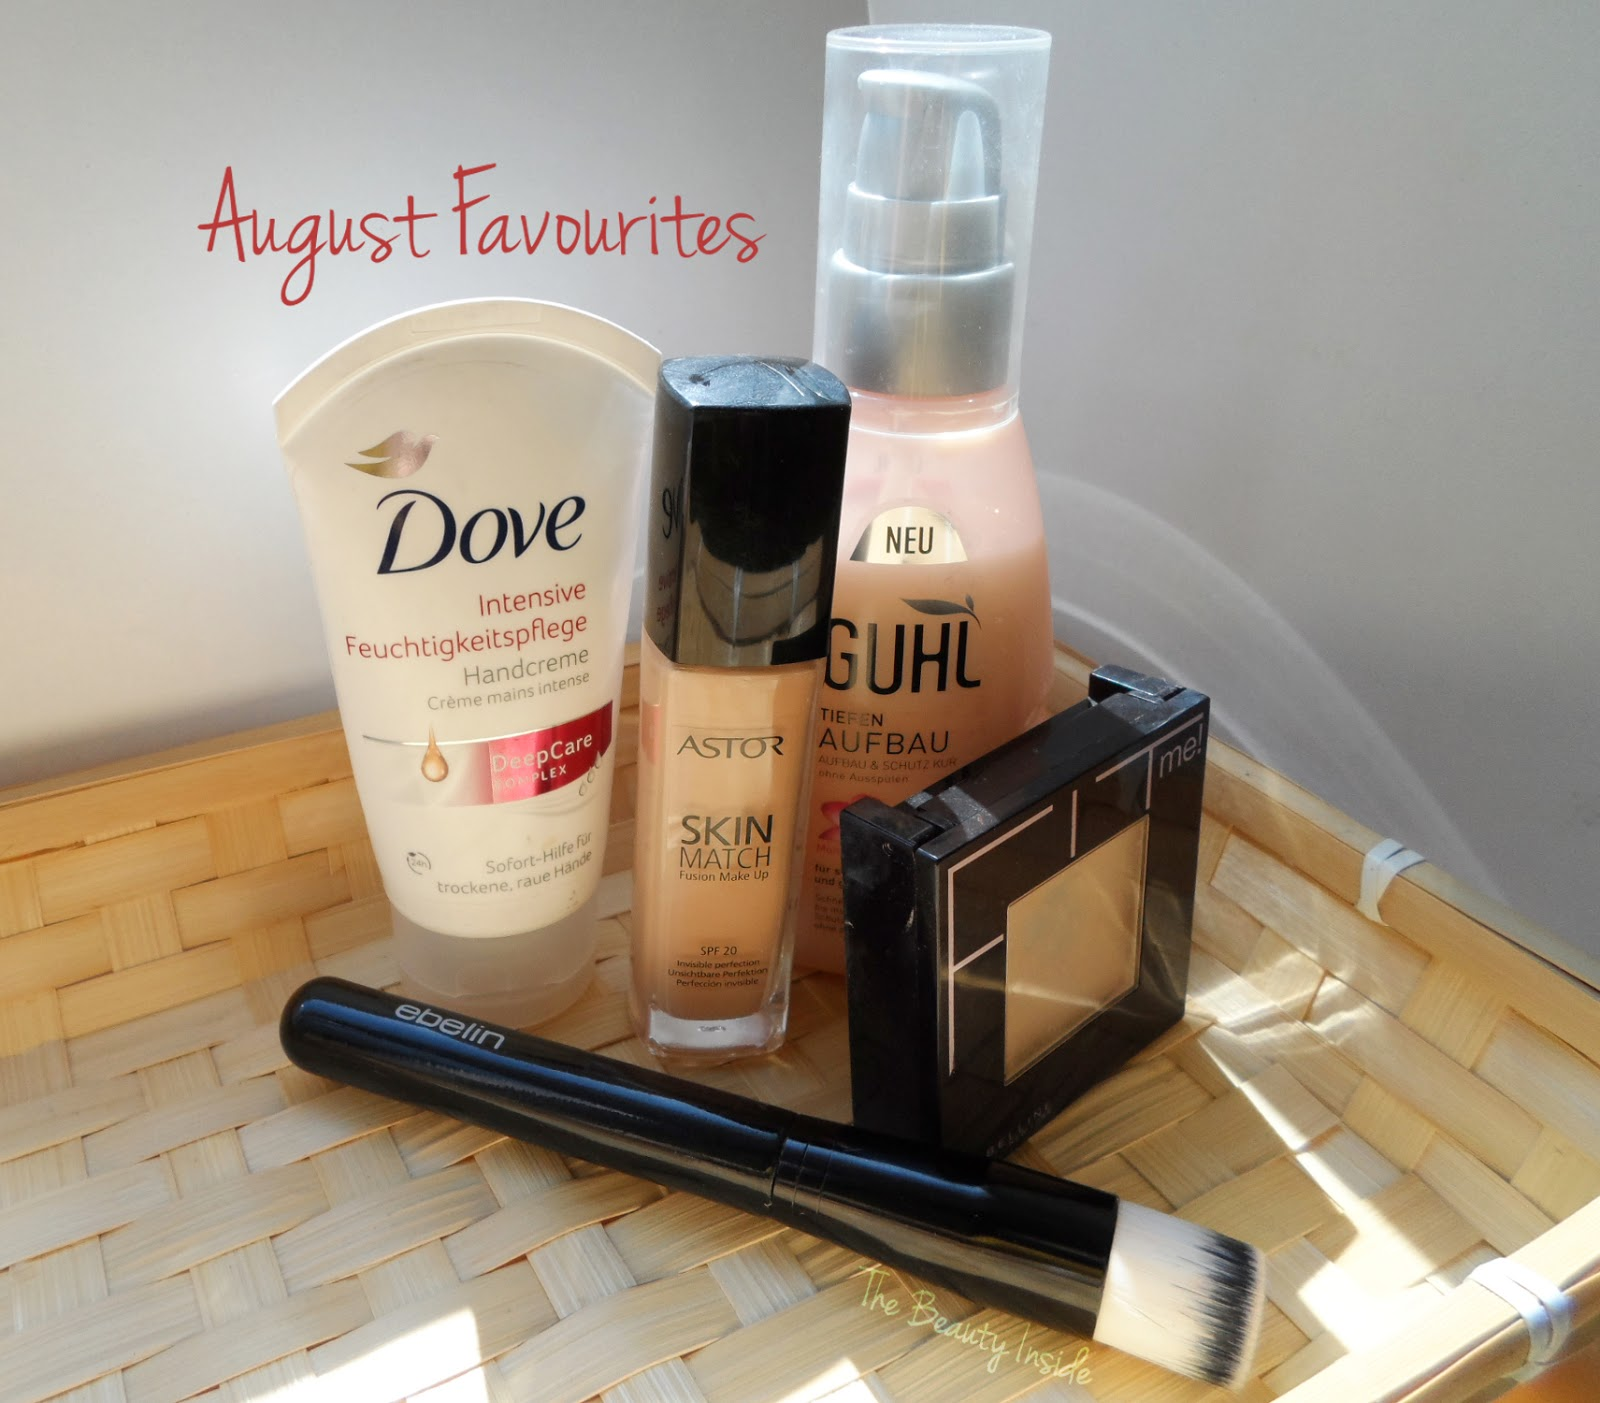 astor make up foundation foundation brush ebelin dove hand cream review swatches beauty haul cosmetics haul